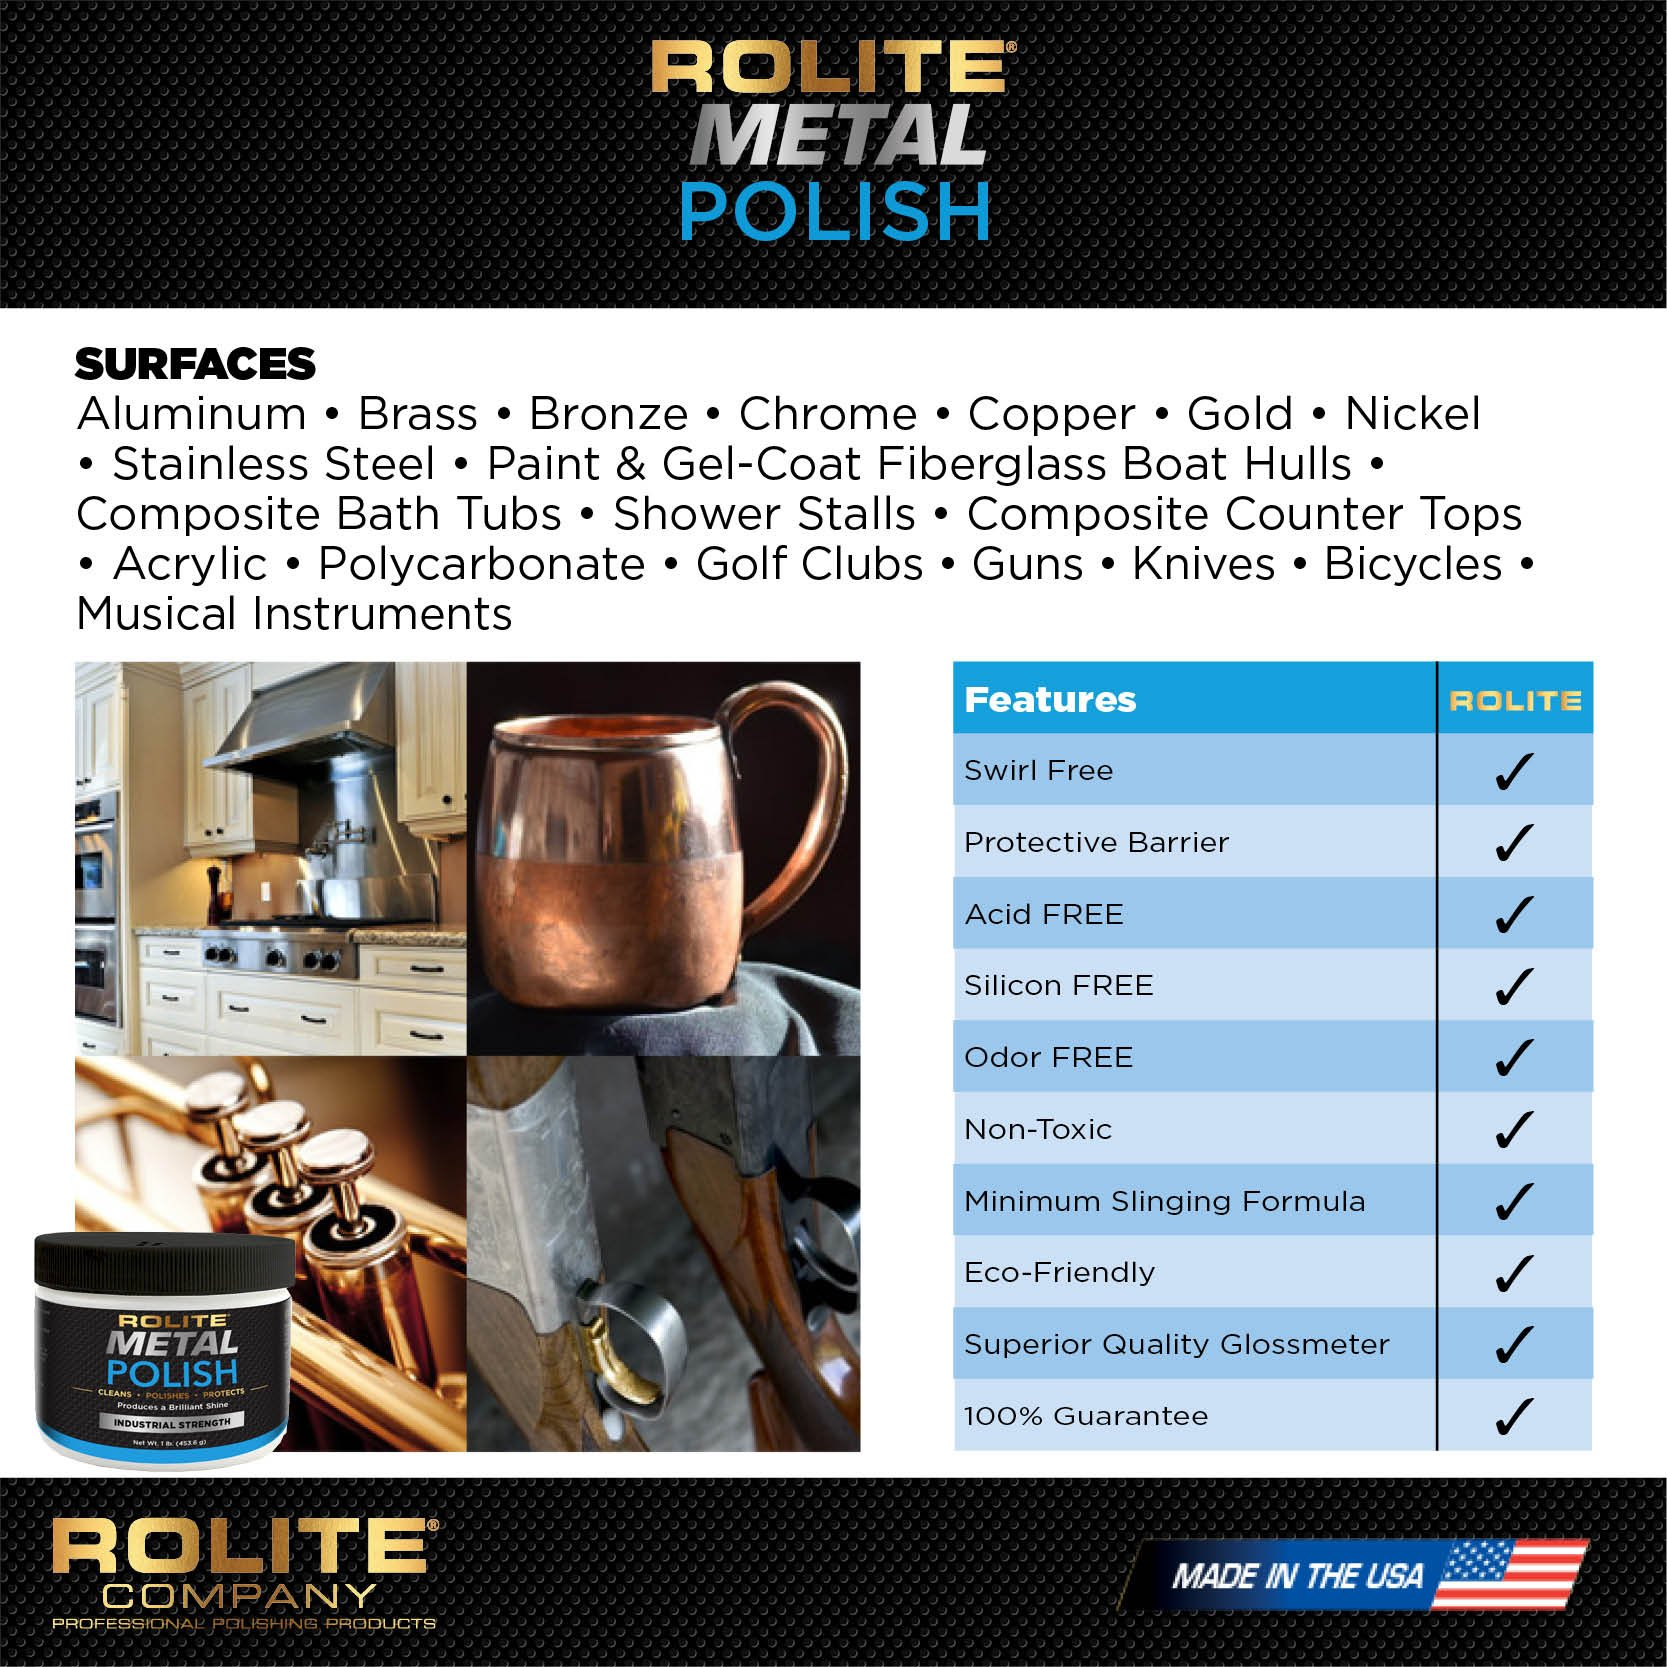 Rolite Metal Polish Paste (10lb) for Aluminum, Brass, Bronze, Chrome, Copper, Gold, Nickel and Stainless Steel by Rolite (Image #4)